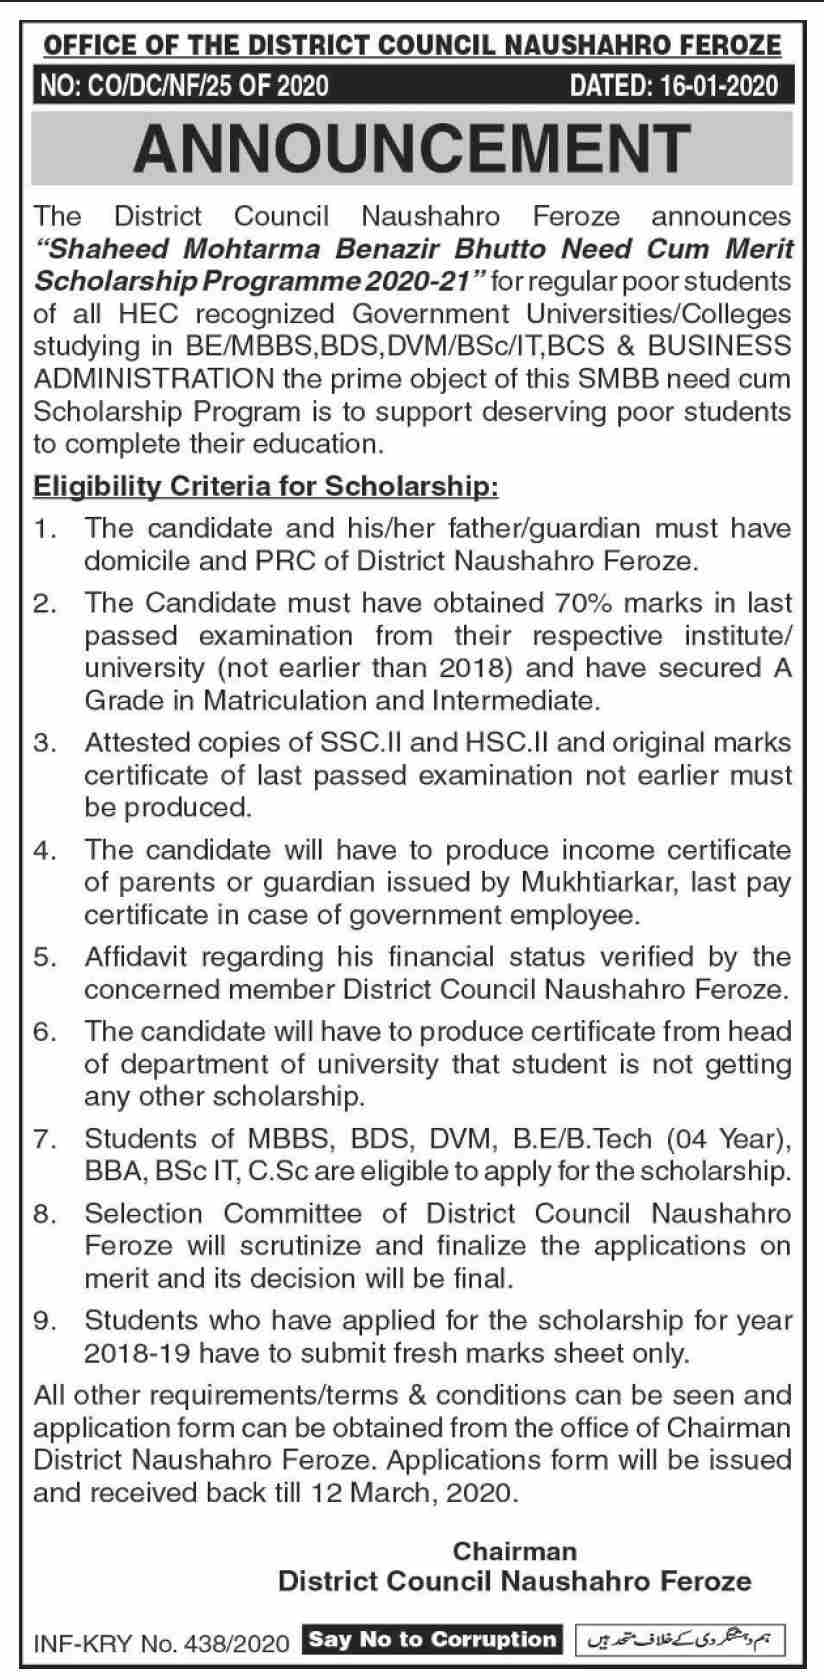 District Council Naushahro Feroze Offeing Scholarship Programs